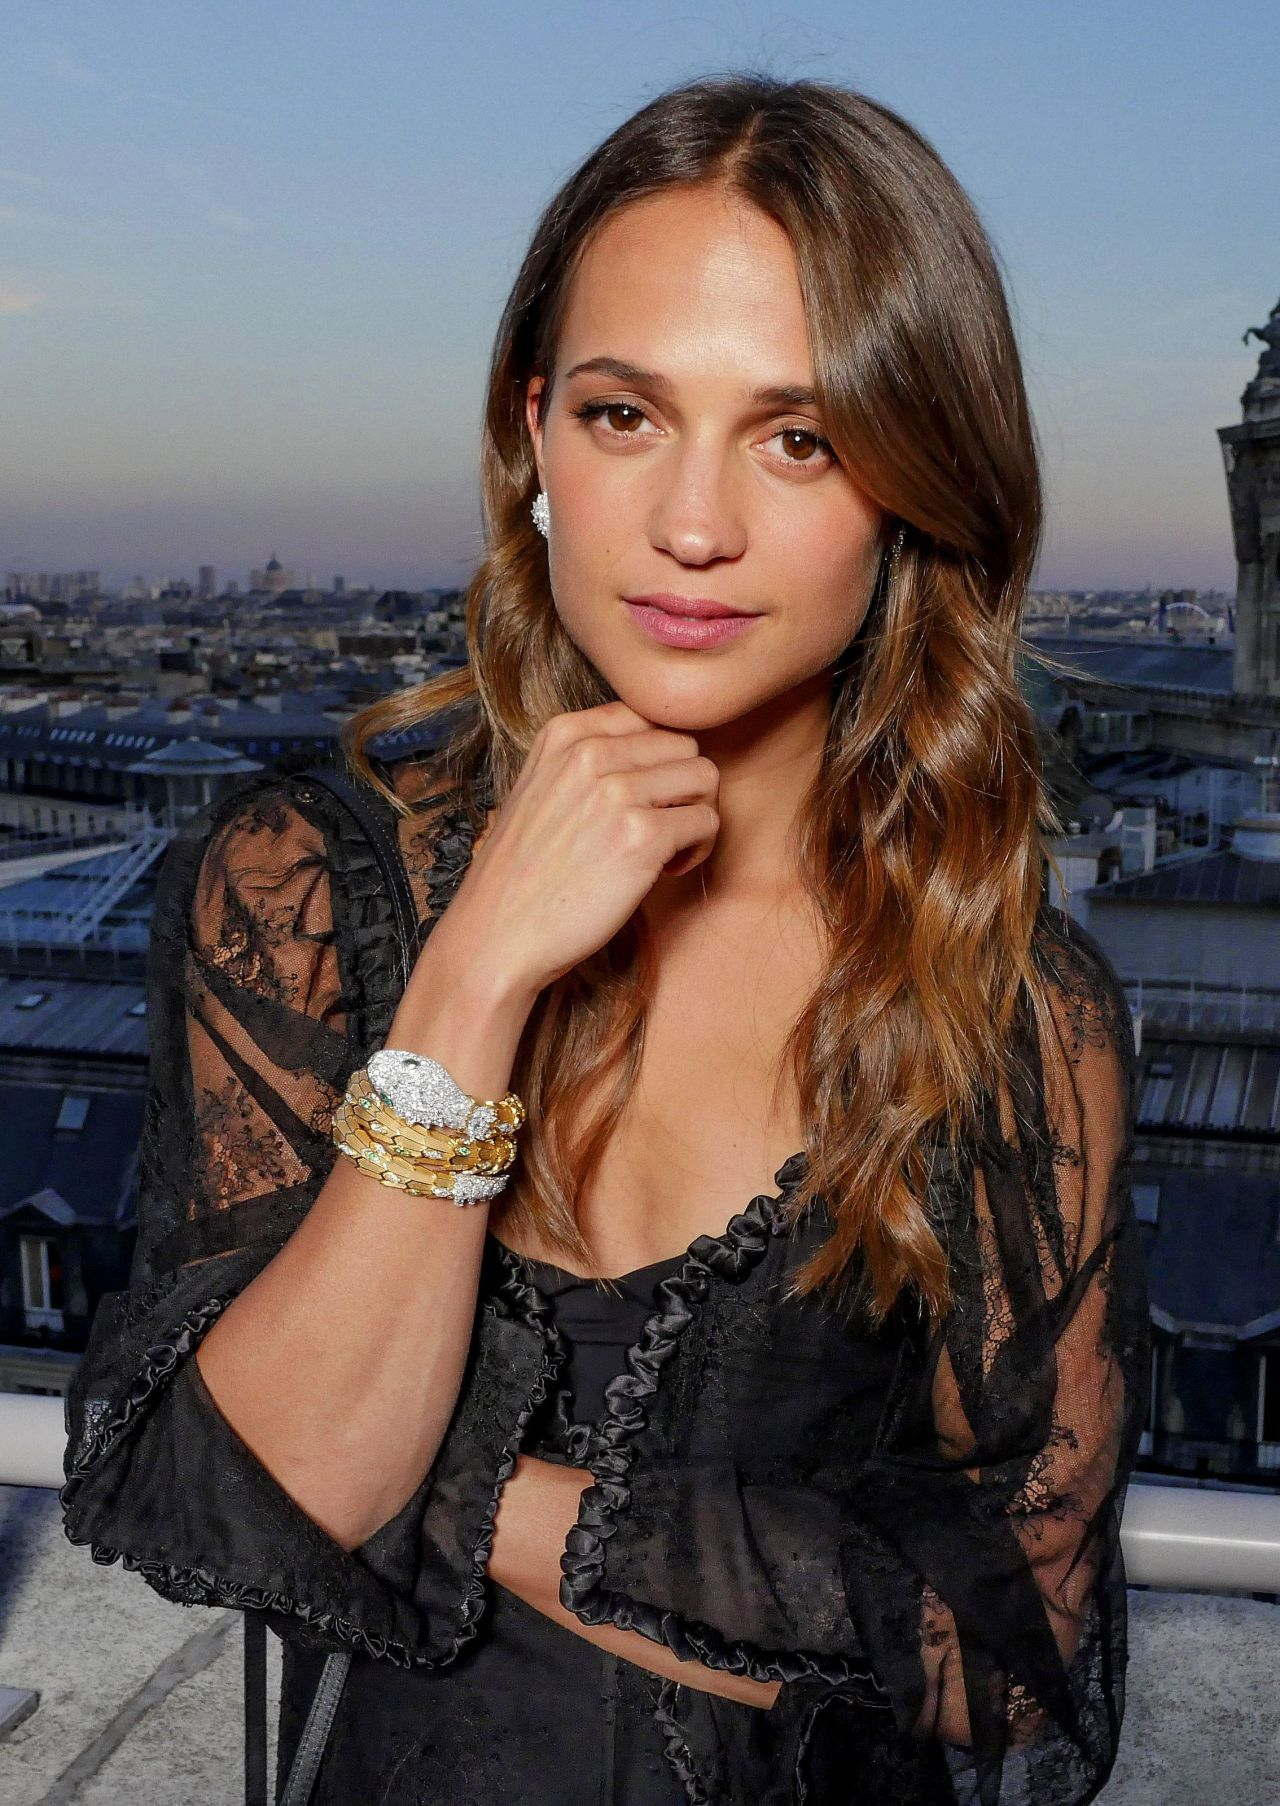 Images Alicia Vikander nude photos 2019